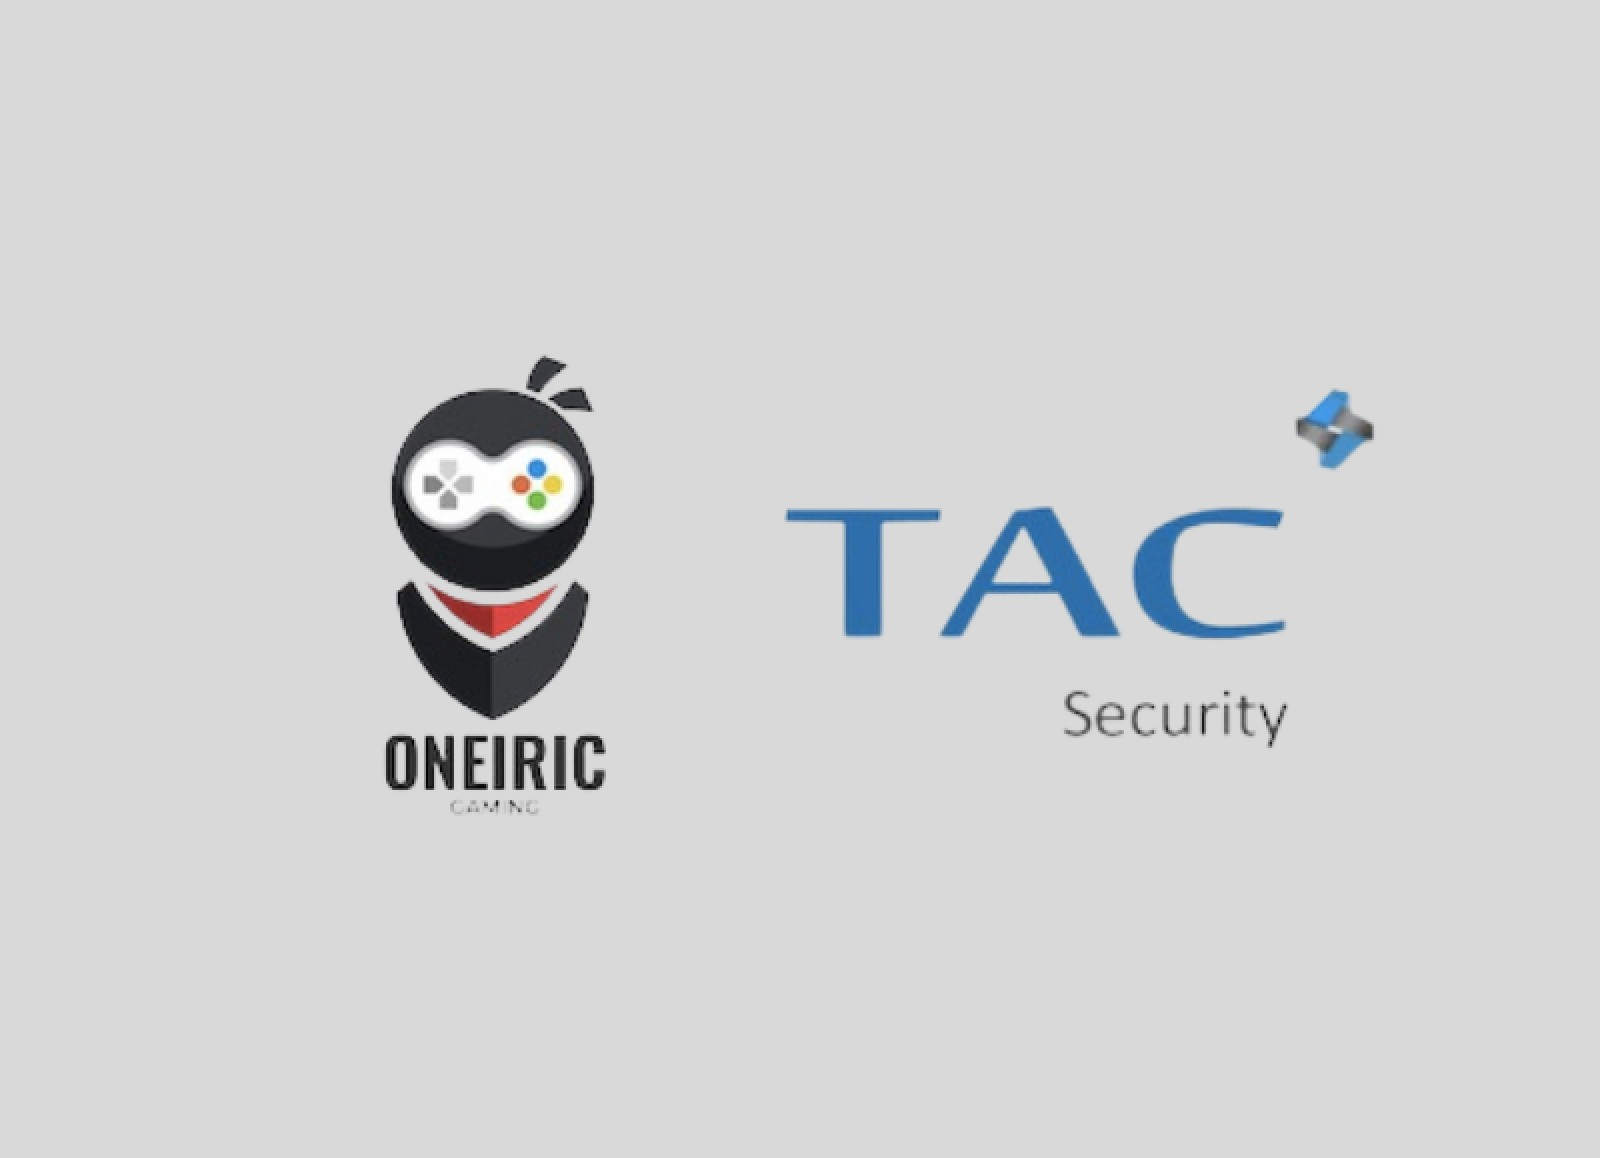 Oneiric Gaming raises finance from Trishneet Arora of TAC Security